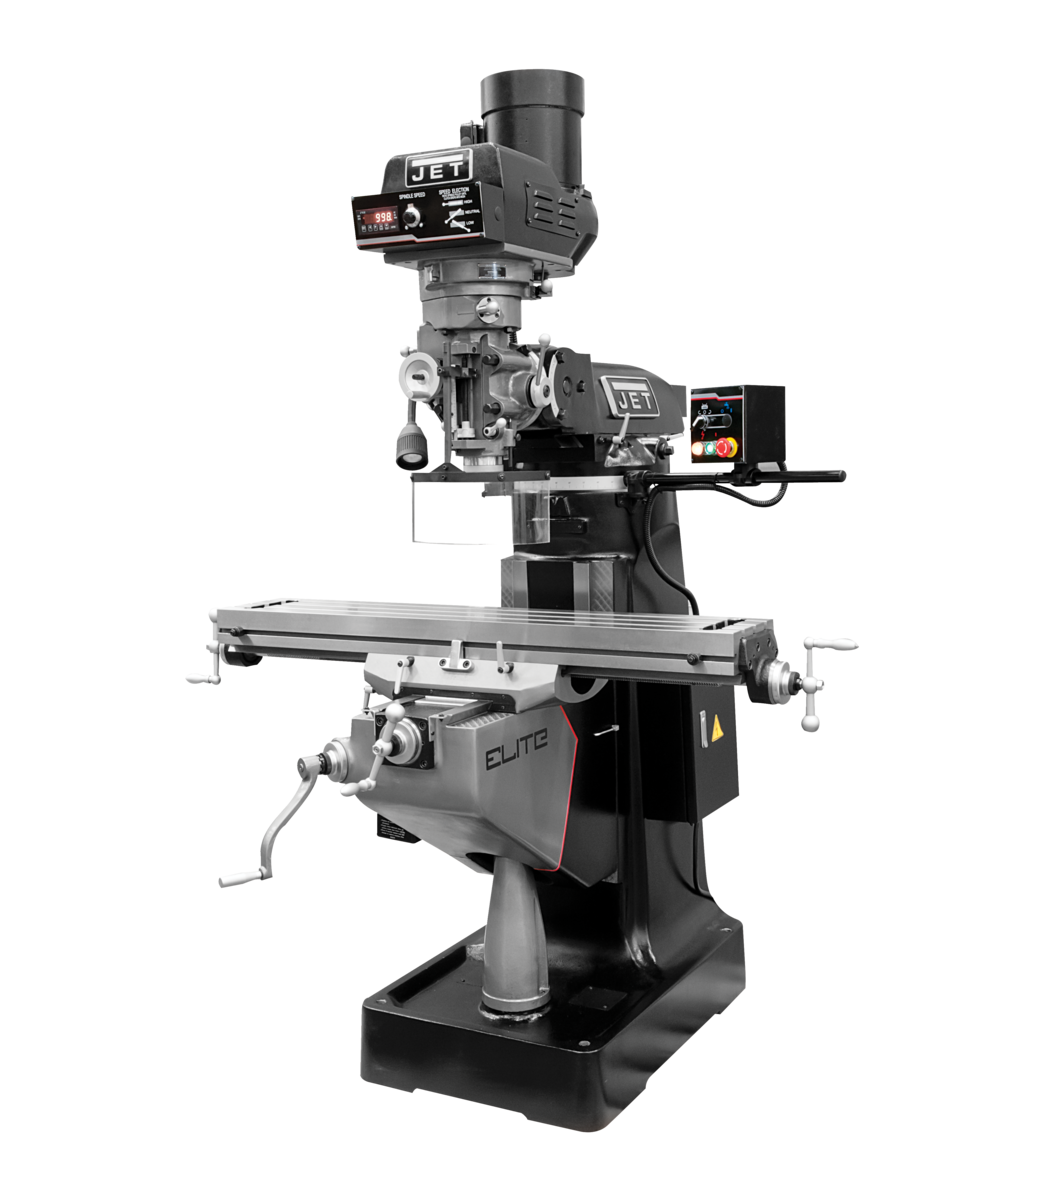 EVS-949 Mill with 3-Axis ACU-RITE 203 (Knee) DRO and X, Y-Axis JET Powerfeeds and USA Made Air Draw Bar